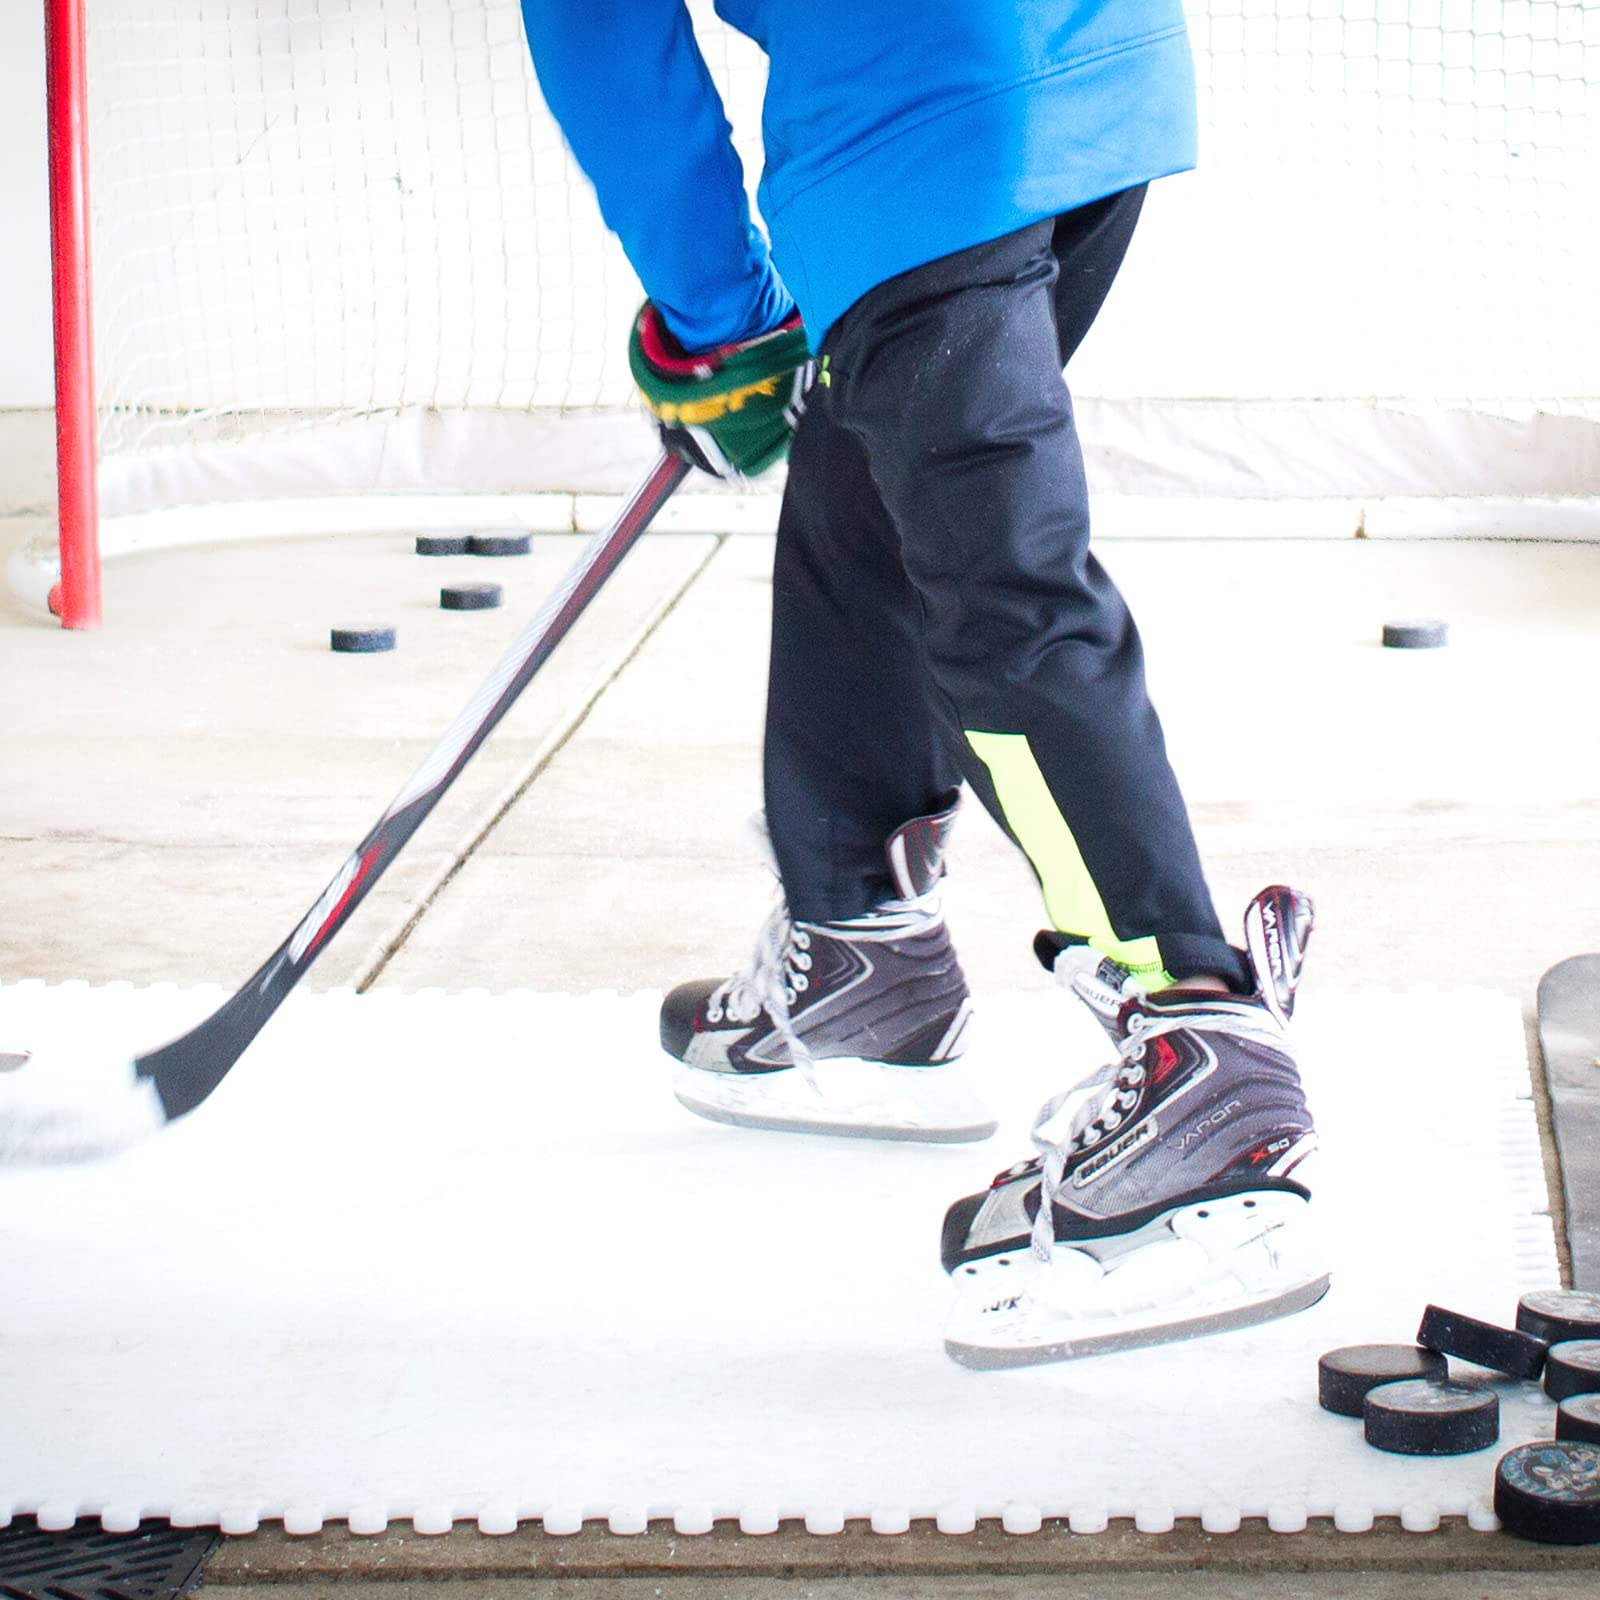 Skate Anytime Synthetic Ice For Hockey Skateable Artificial Ice Tiles Backyard Ice Rink Starter Kit Buy Online At Best Price In Uae Amazon Ae Best backyard ice rink kit canada